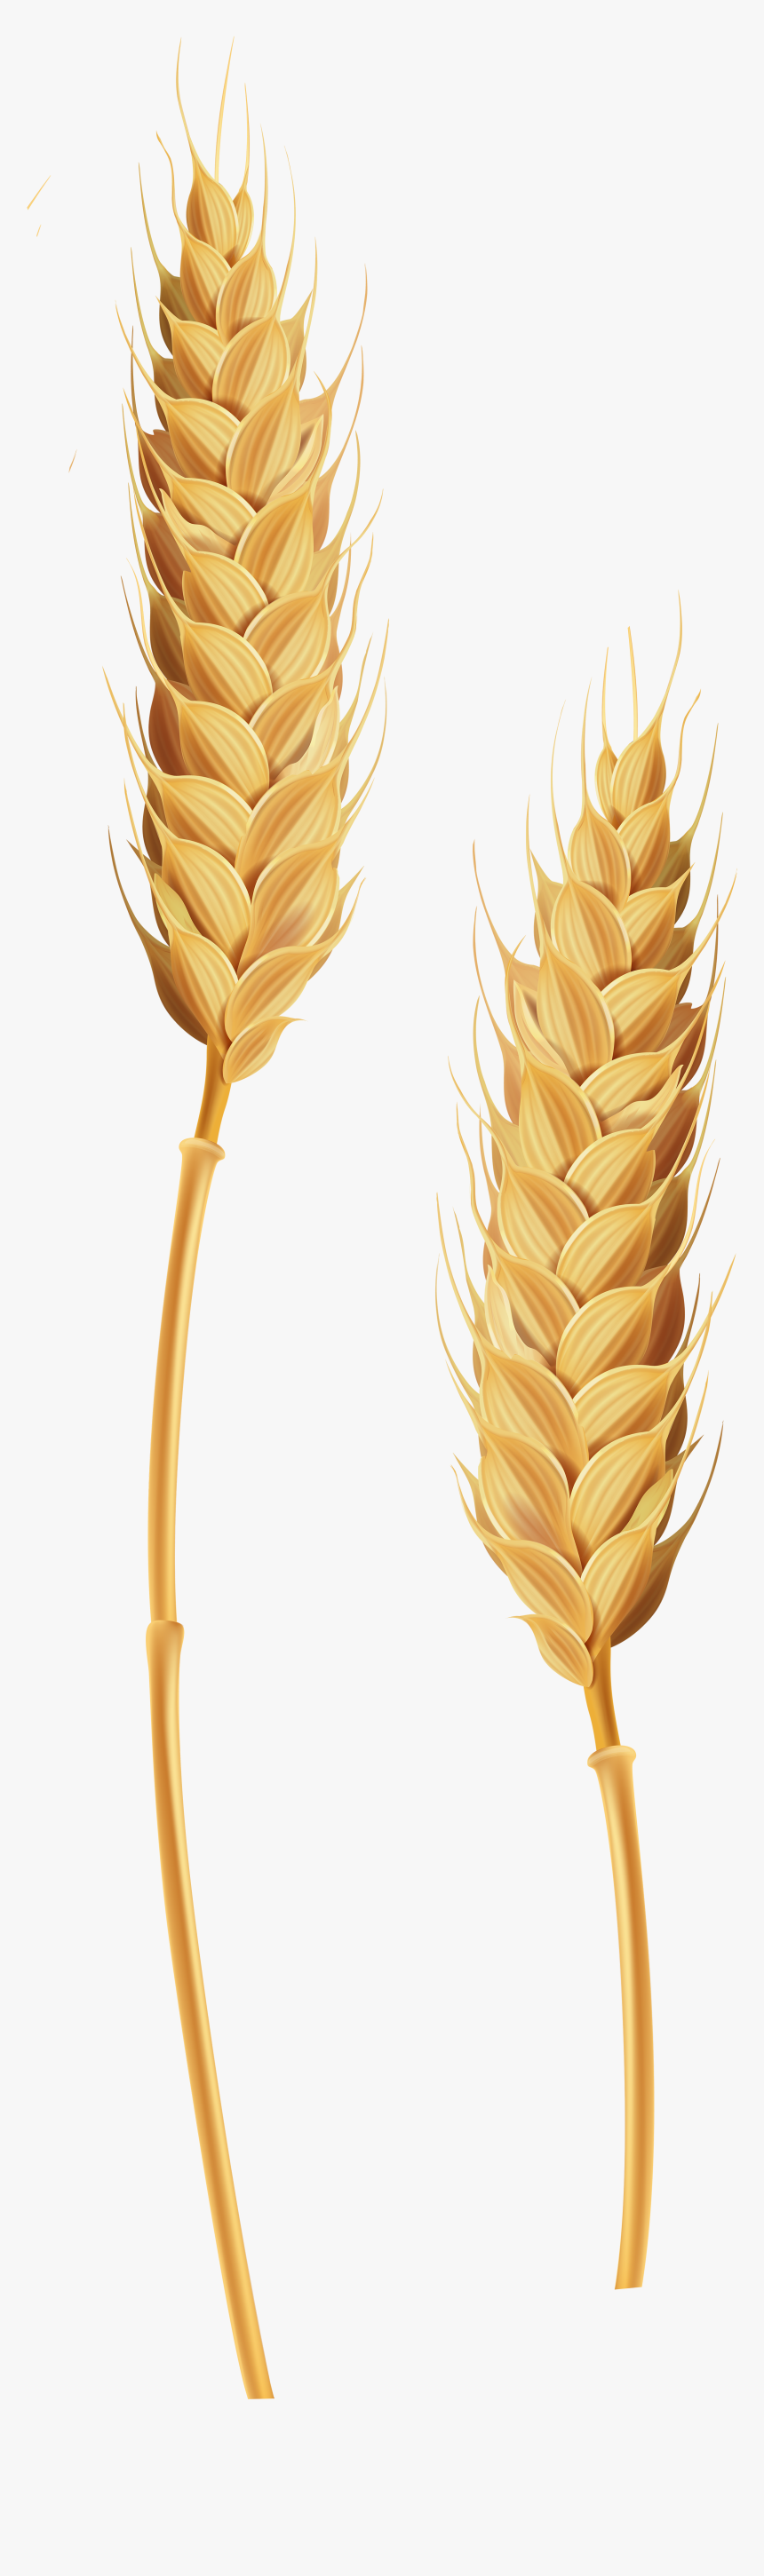 Wheat Clipart Transparent Background.